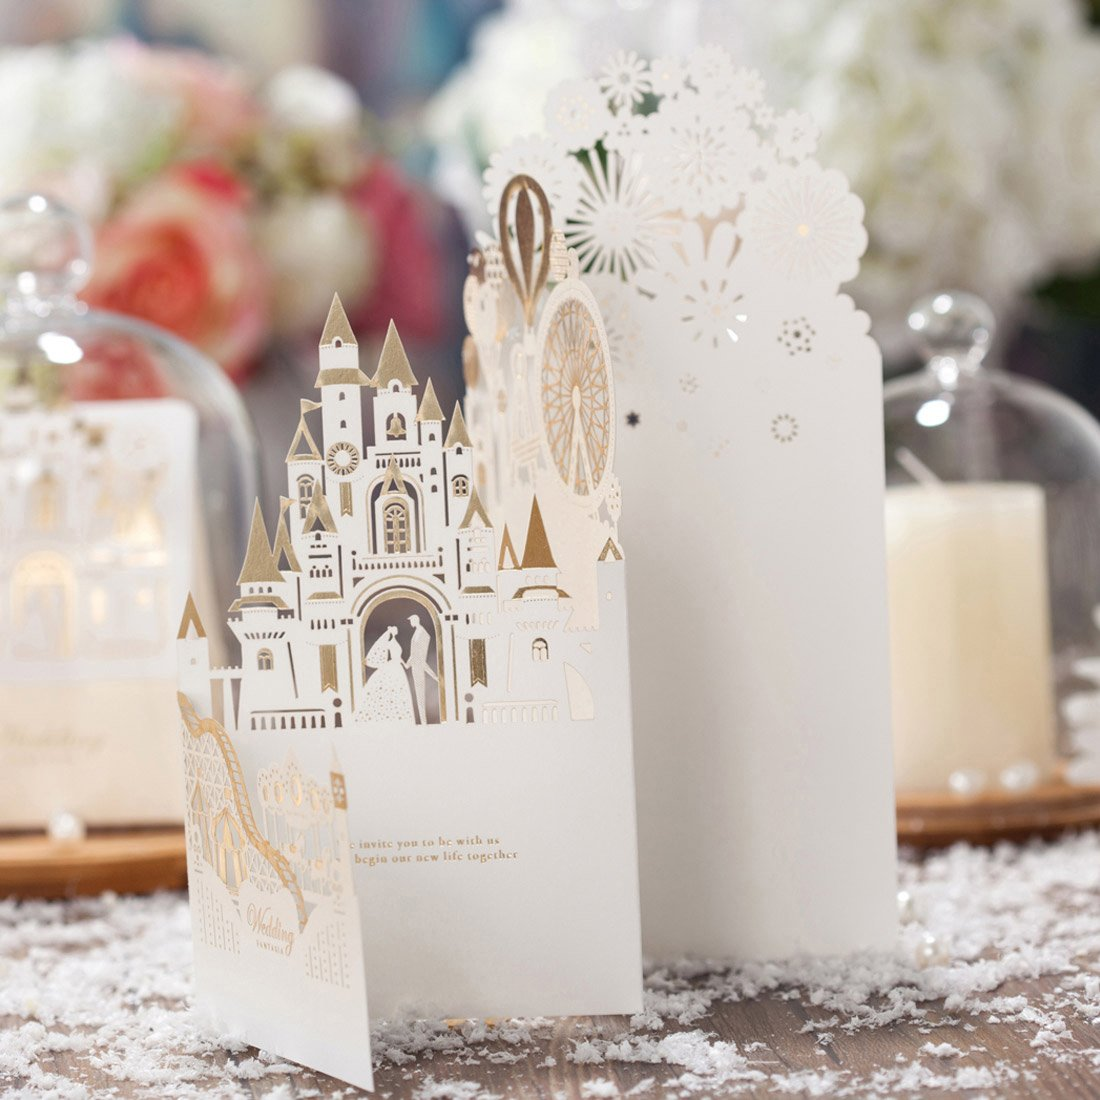 Wishmade 50pcs Laser Cut Wedding Invitations Cards kit With 3D Bride ...